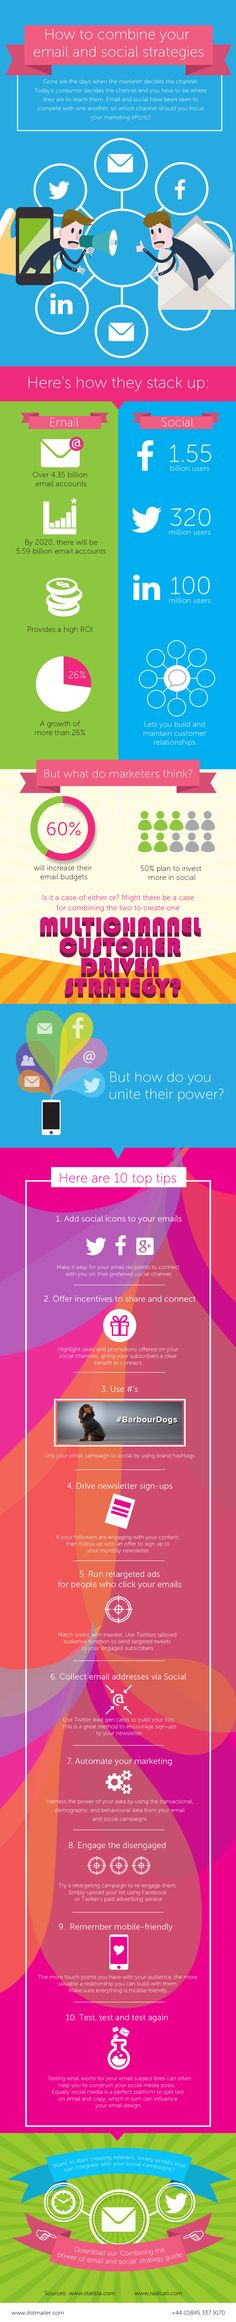 NIce infographic sharing ideas about How to Combine Your Email And #Social Media Strategies.